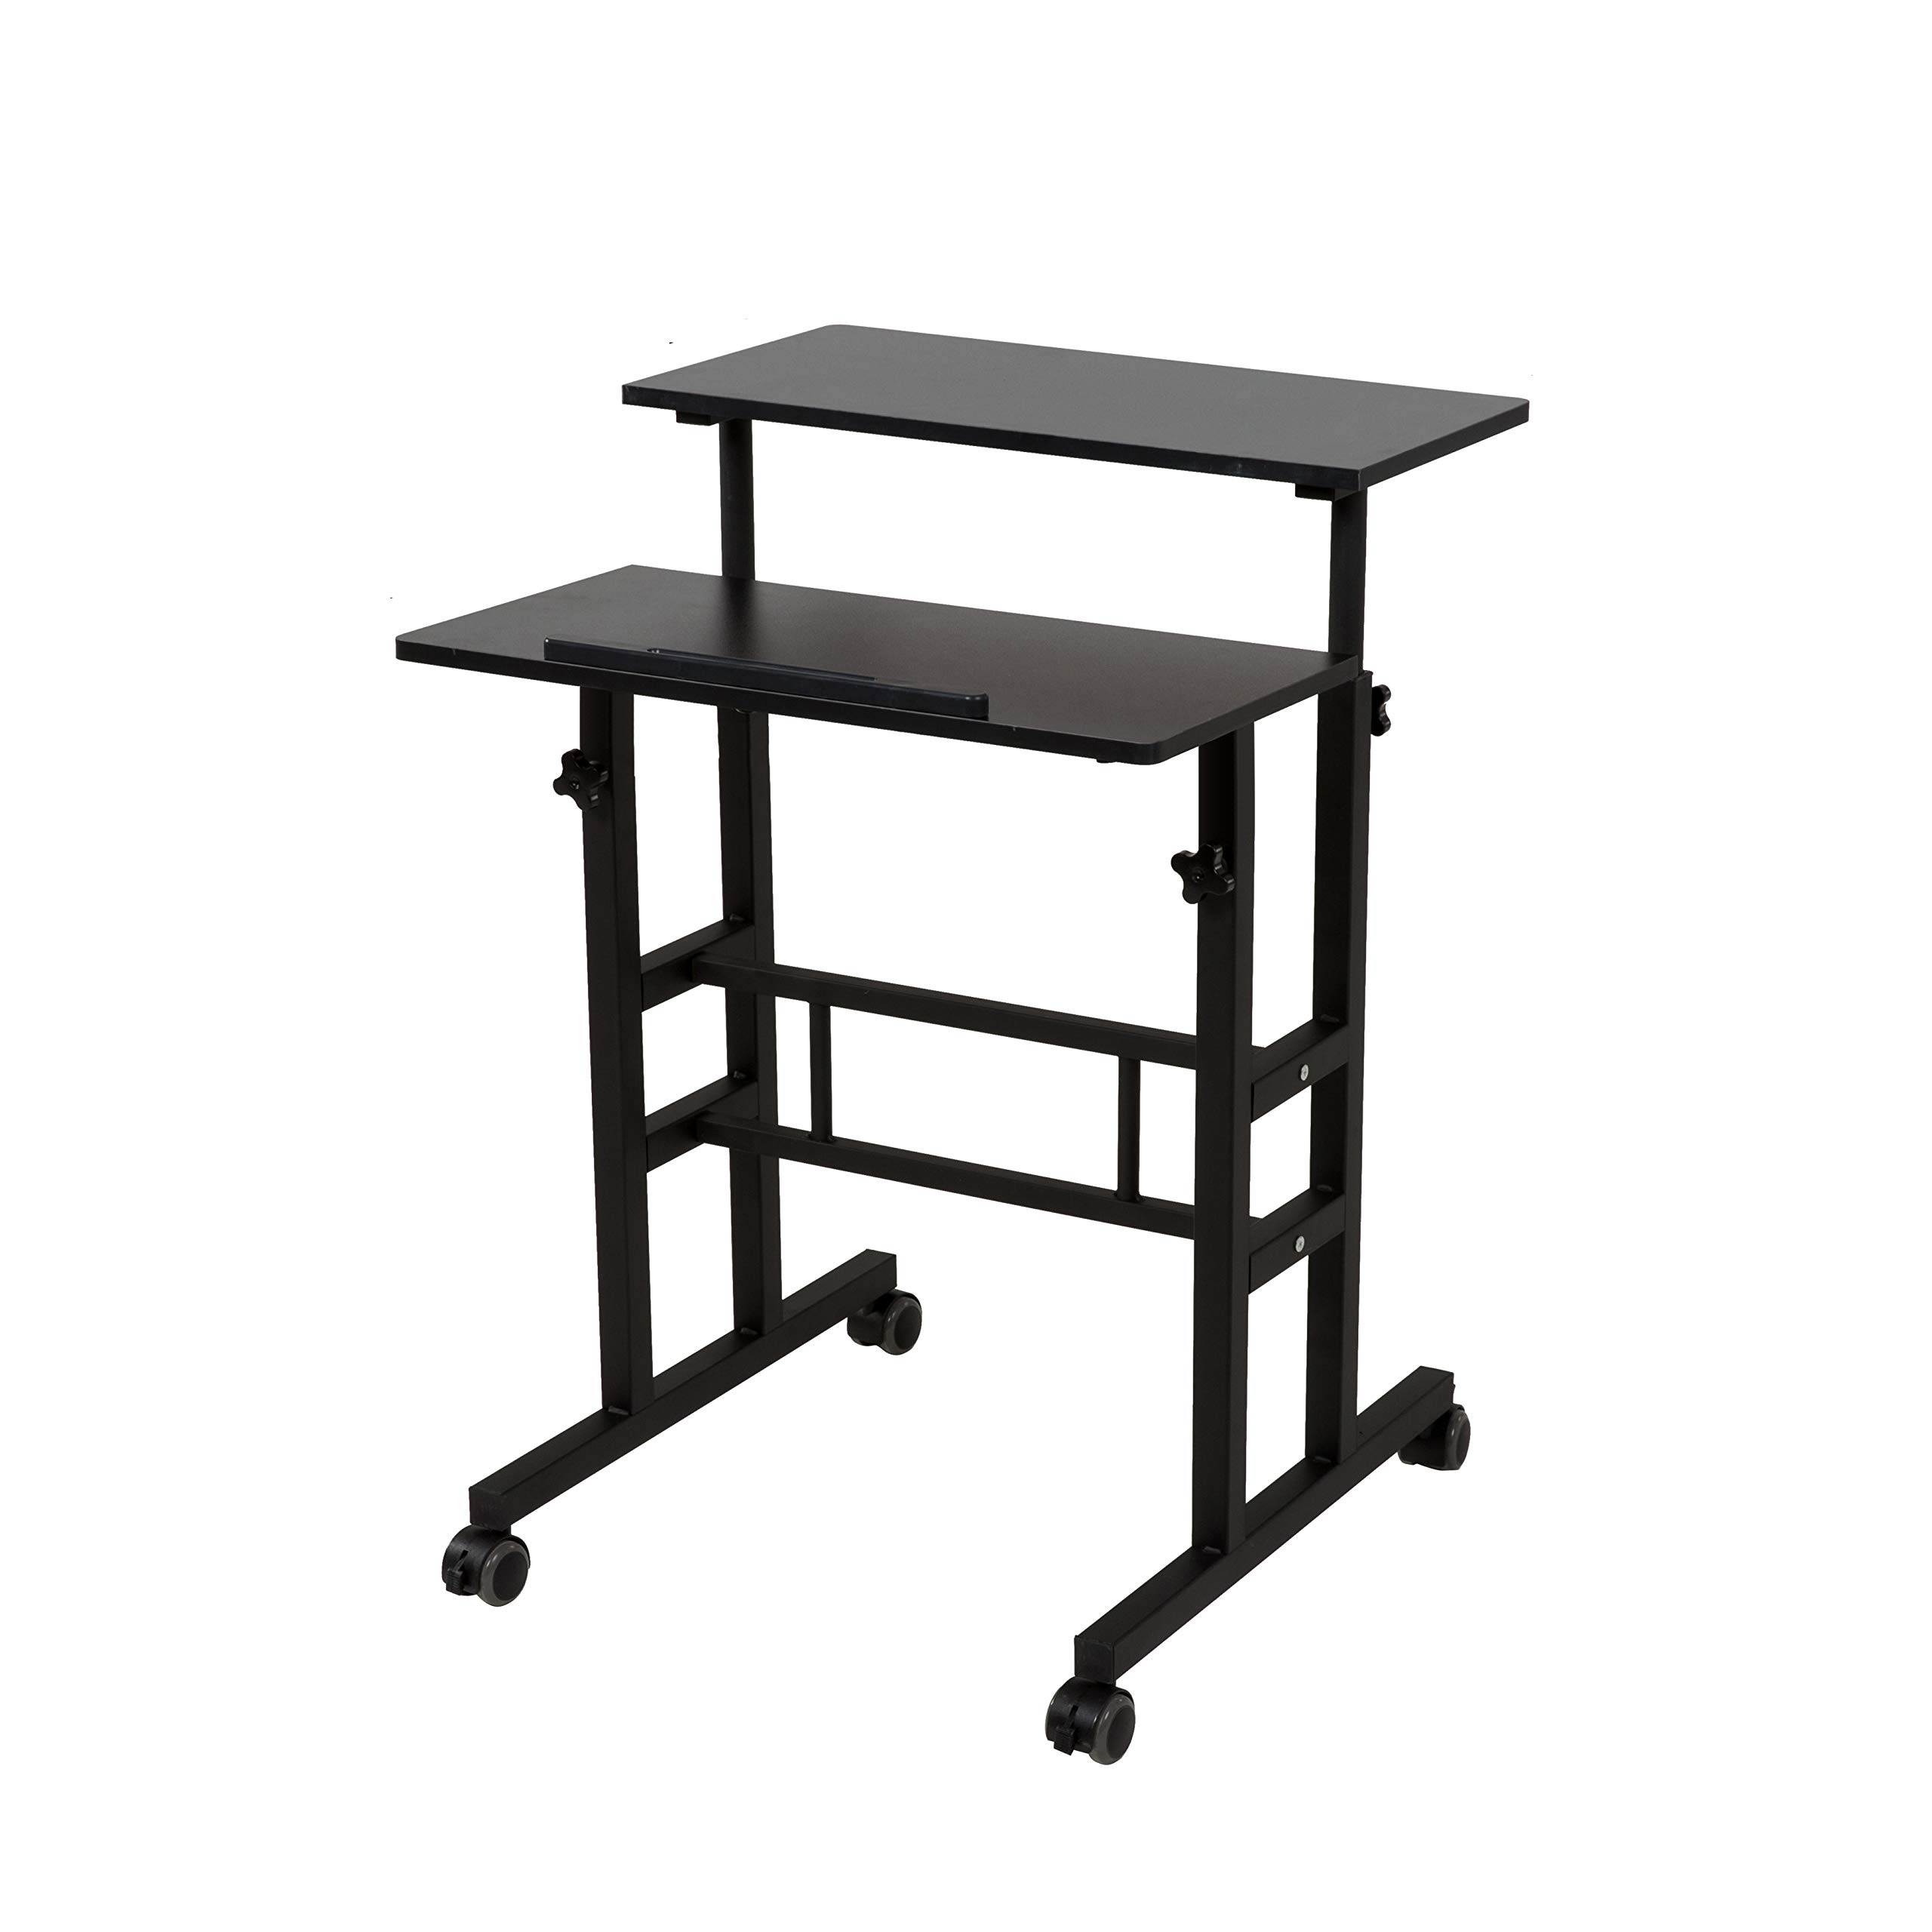 SDADI 2 Inches Carpet Wheels Mobile Standing Desk Stand Up Desk Height Adjustable Home Office Desk with Standing and Seating 2 Modes 3.0 Edition, Black